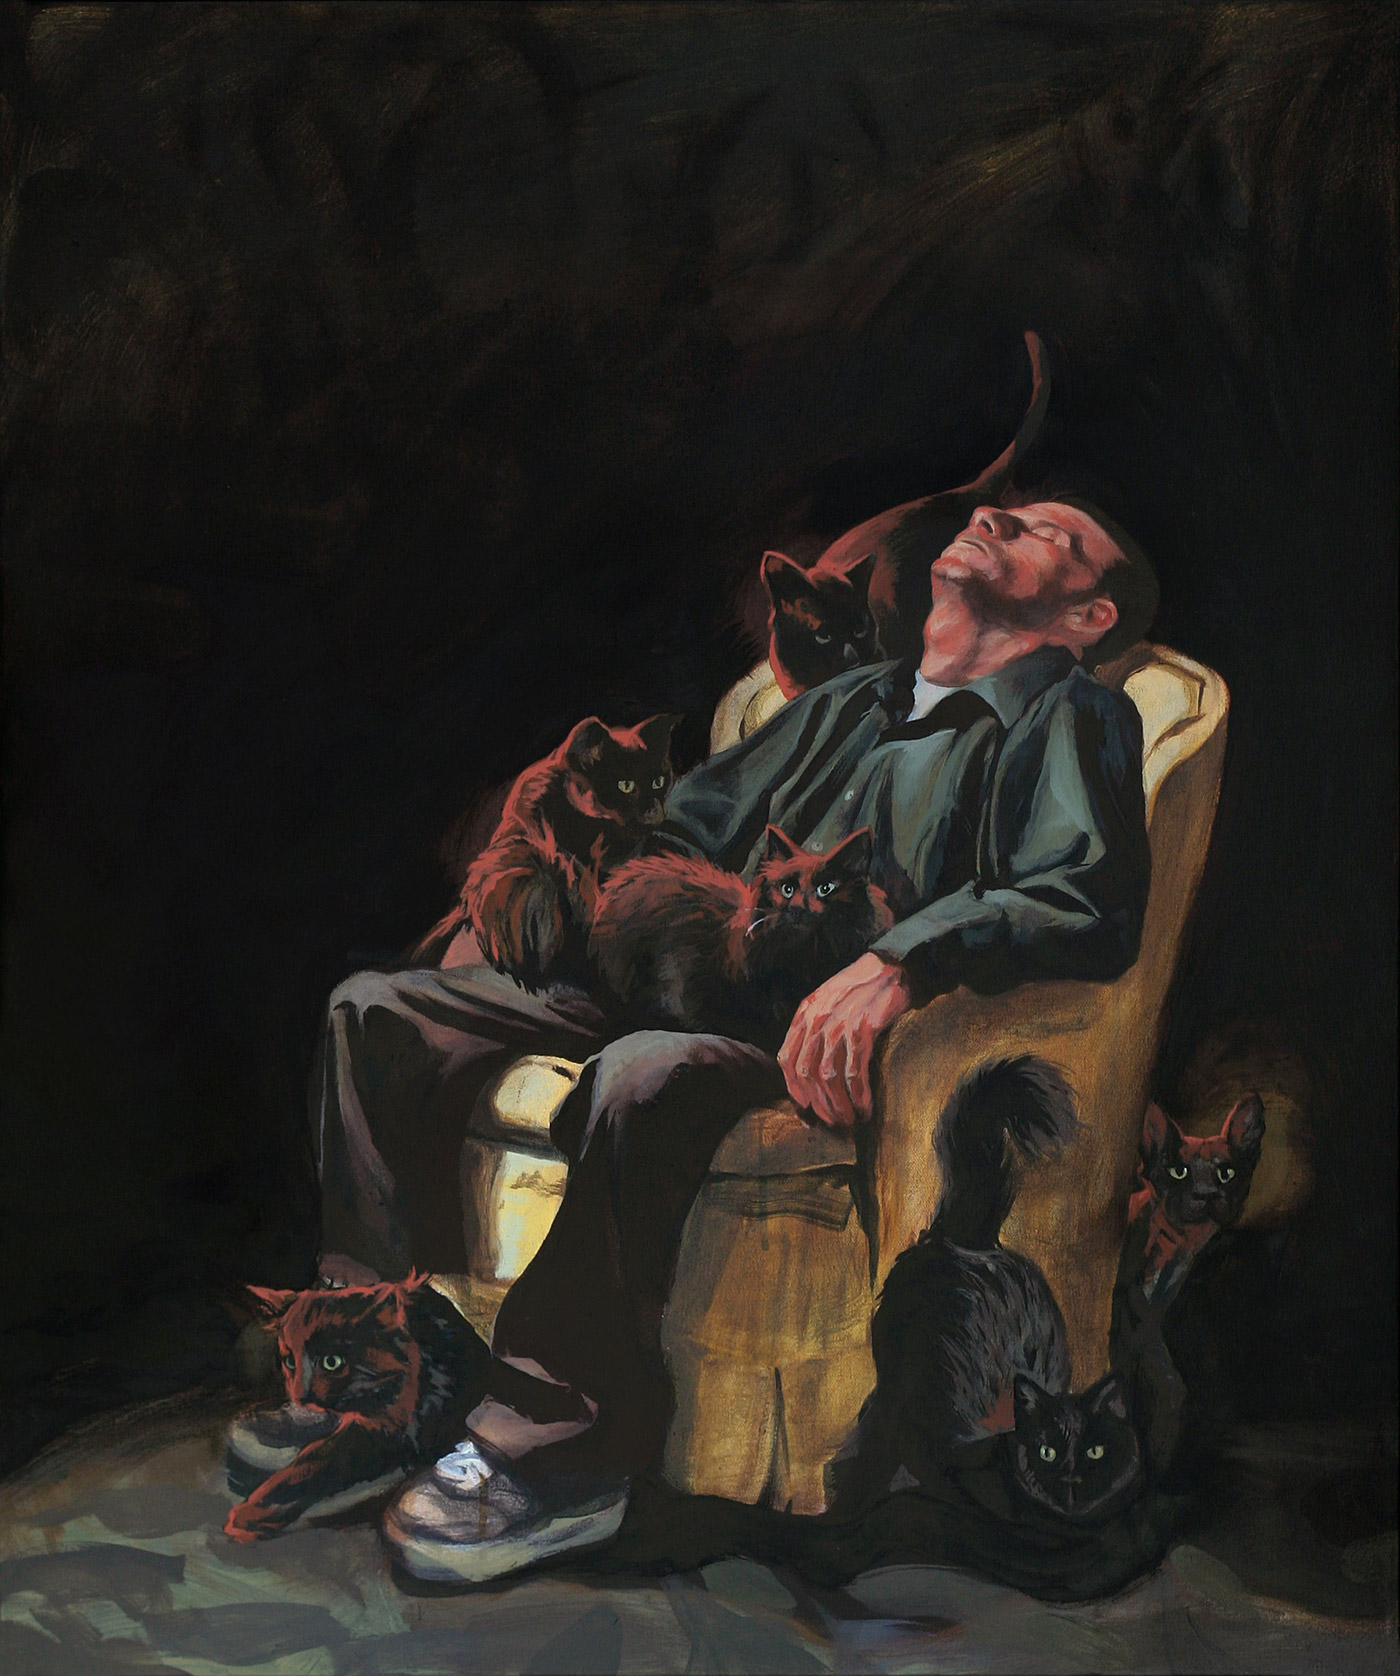 Man Sitting with Cats Diptych Left